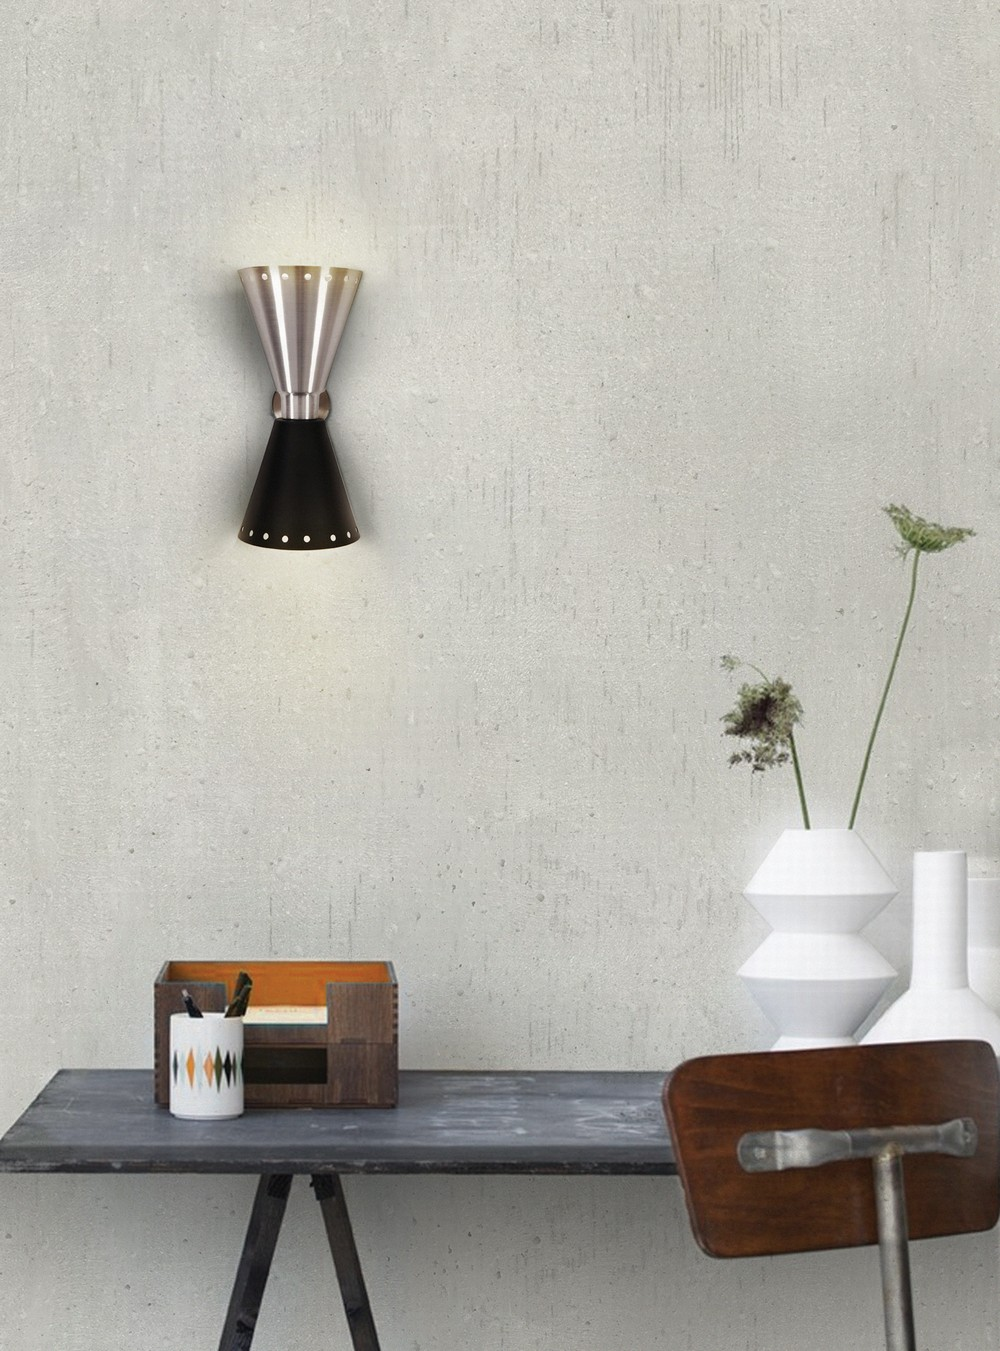 Super Tips For Your Retro Dining Room Lighting 8 Retro Dining Room Lighting